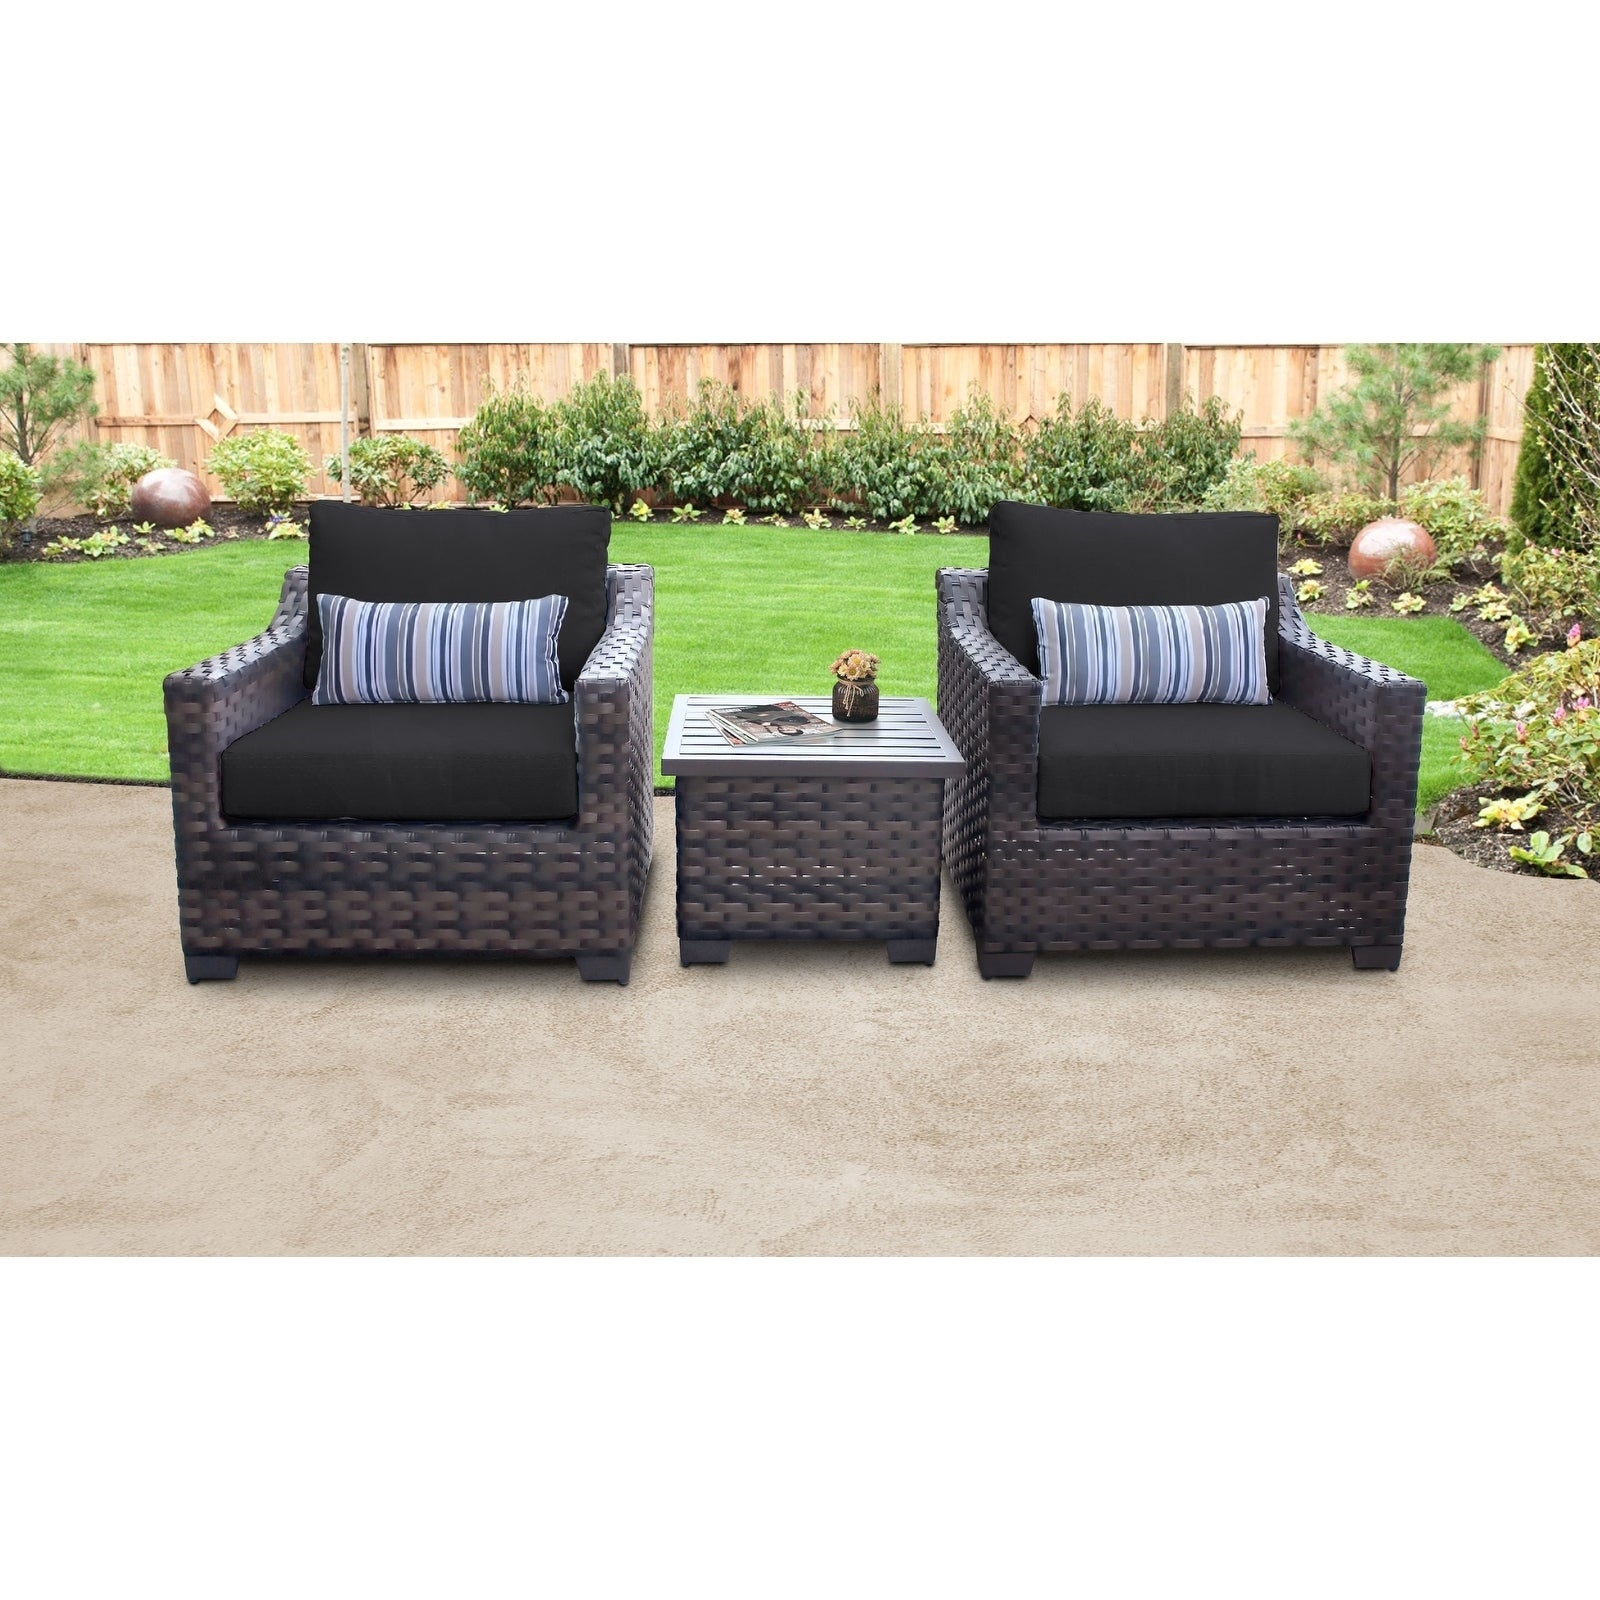 Shop kathy ireland river brook 3 piece outdoor wicker patio furniture set 03a free shipping today overstock 27615223